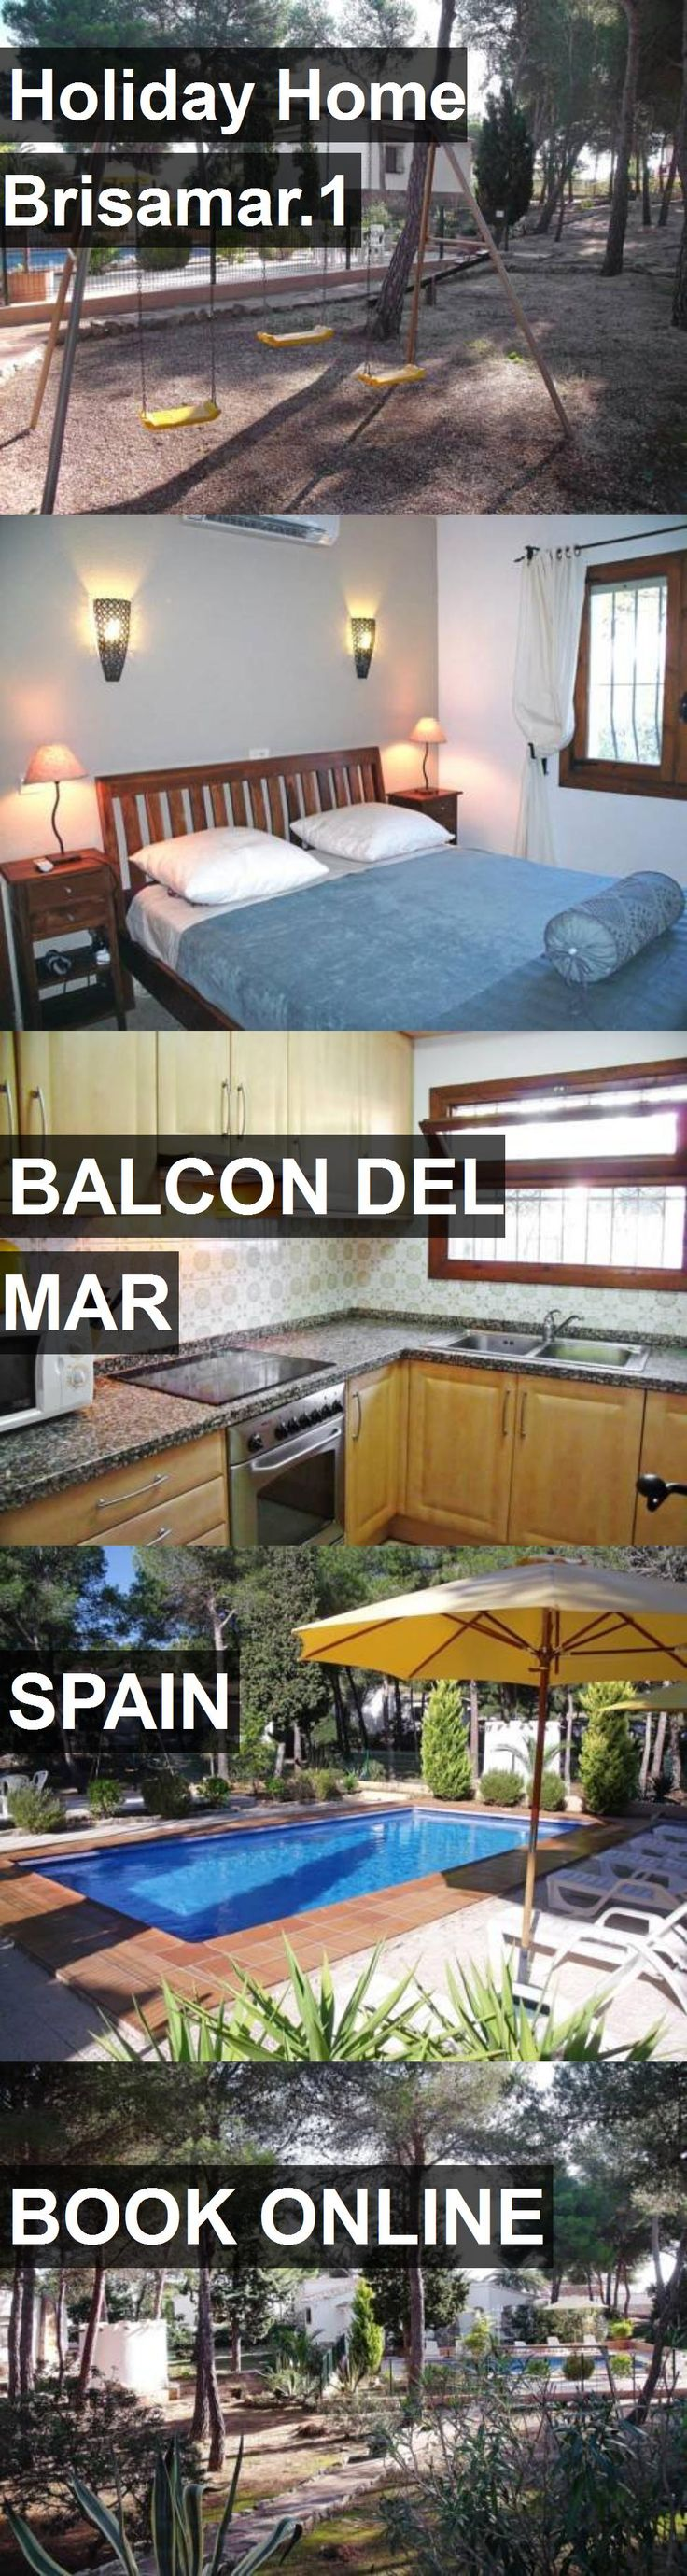 Hotel Holiday Home Brisamar.1 in Balcon del Mar, Spain. For more information, photos, reviews and best prices please follow the link. #Spain #BalcondelMar #travel #vacation #hotel